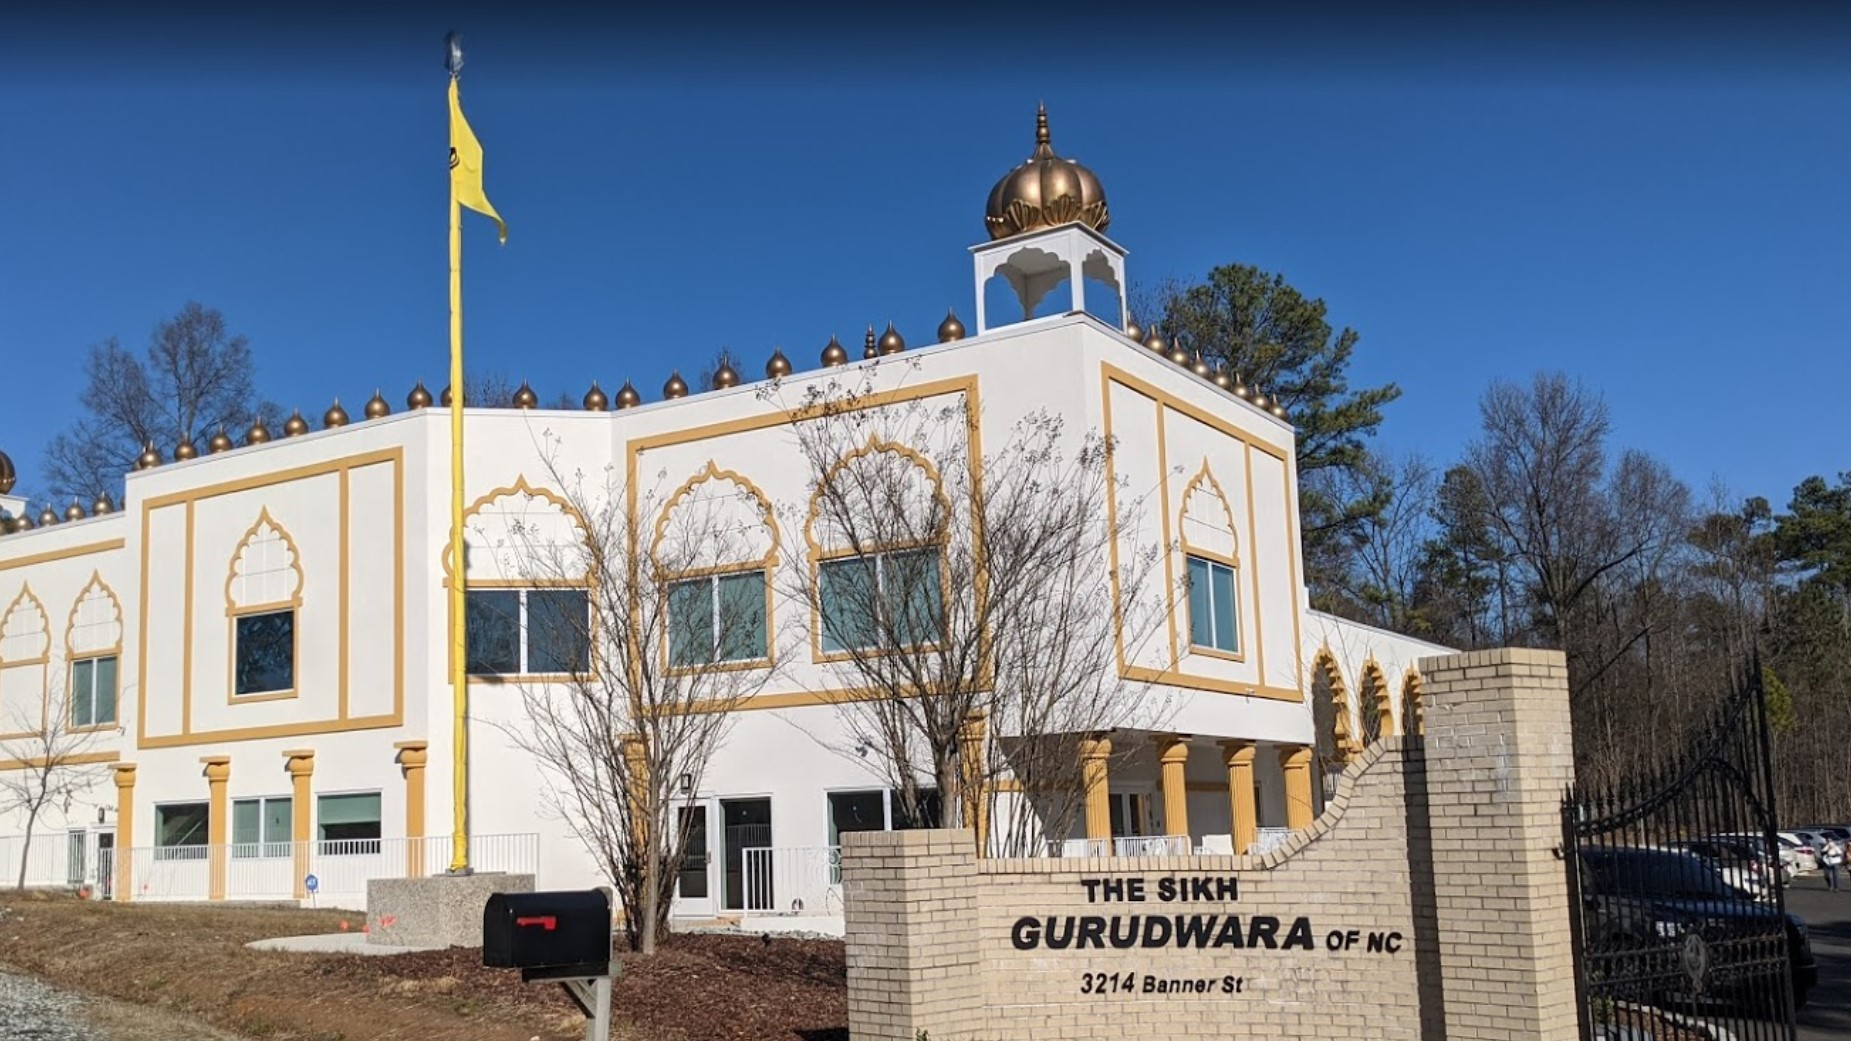 Sikh Gurdwara of North Carolina